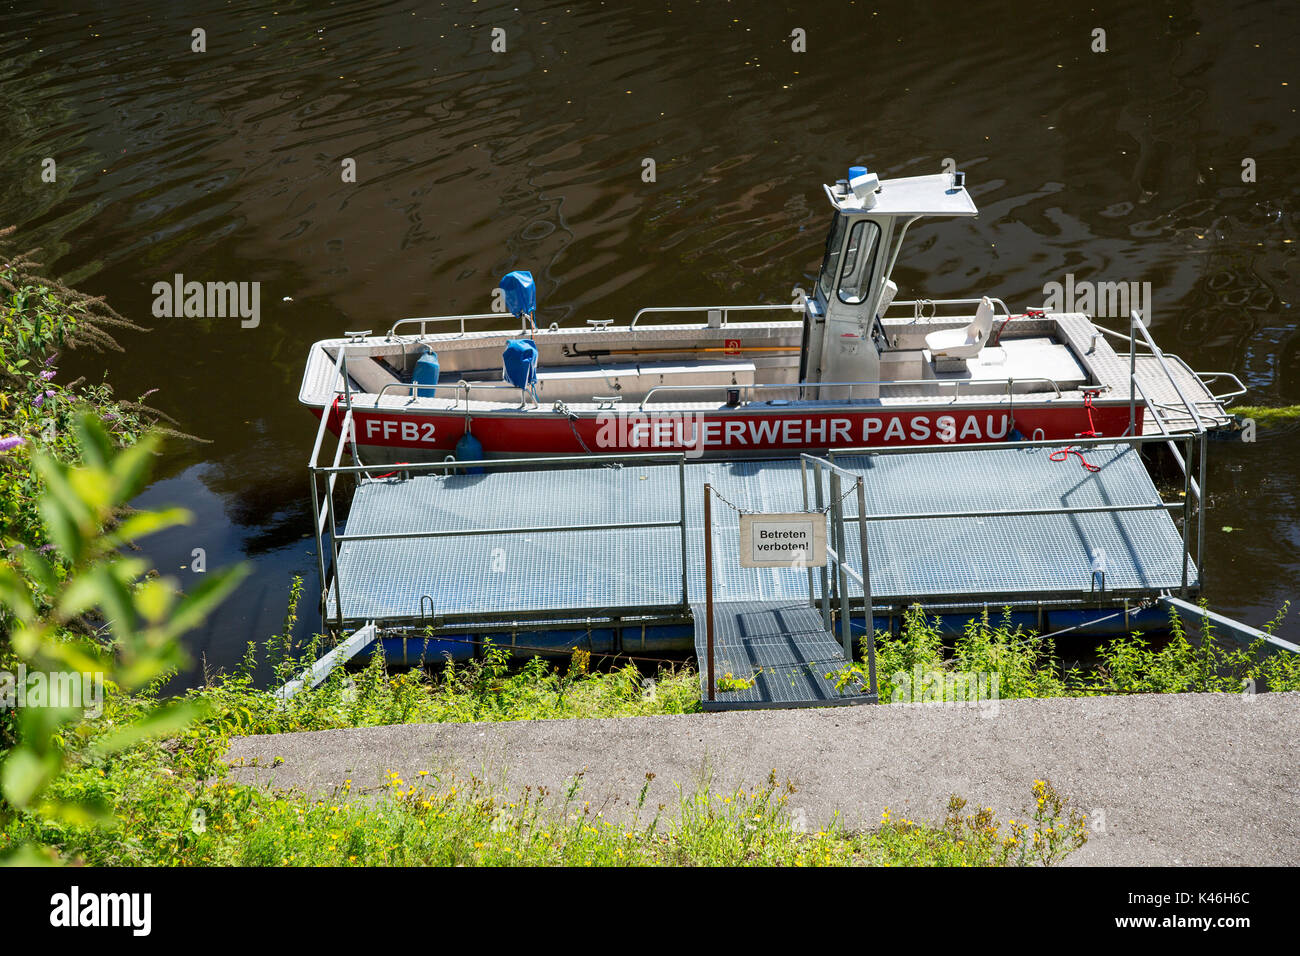 A fire service (Feuerwehr) river rescue boat moored on the river Danube in Passau, Bavaria, Germany. - Stock Image